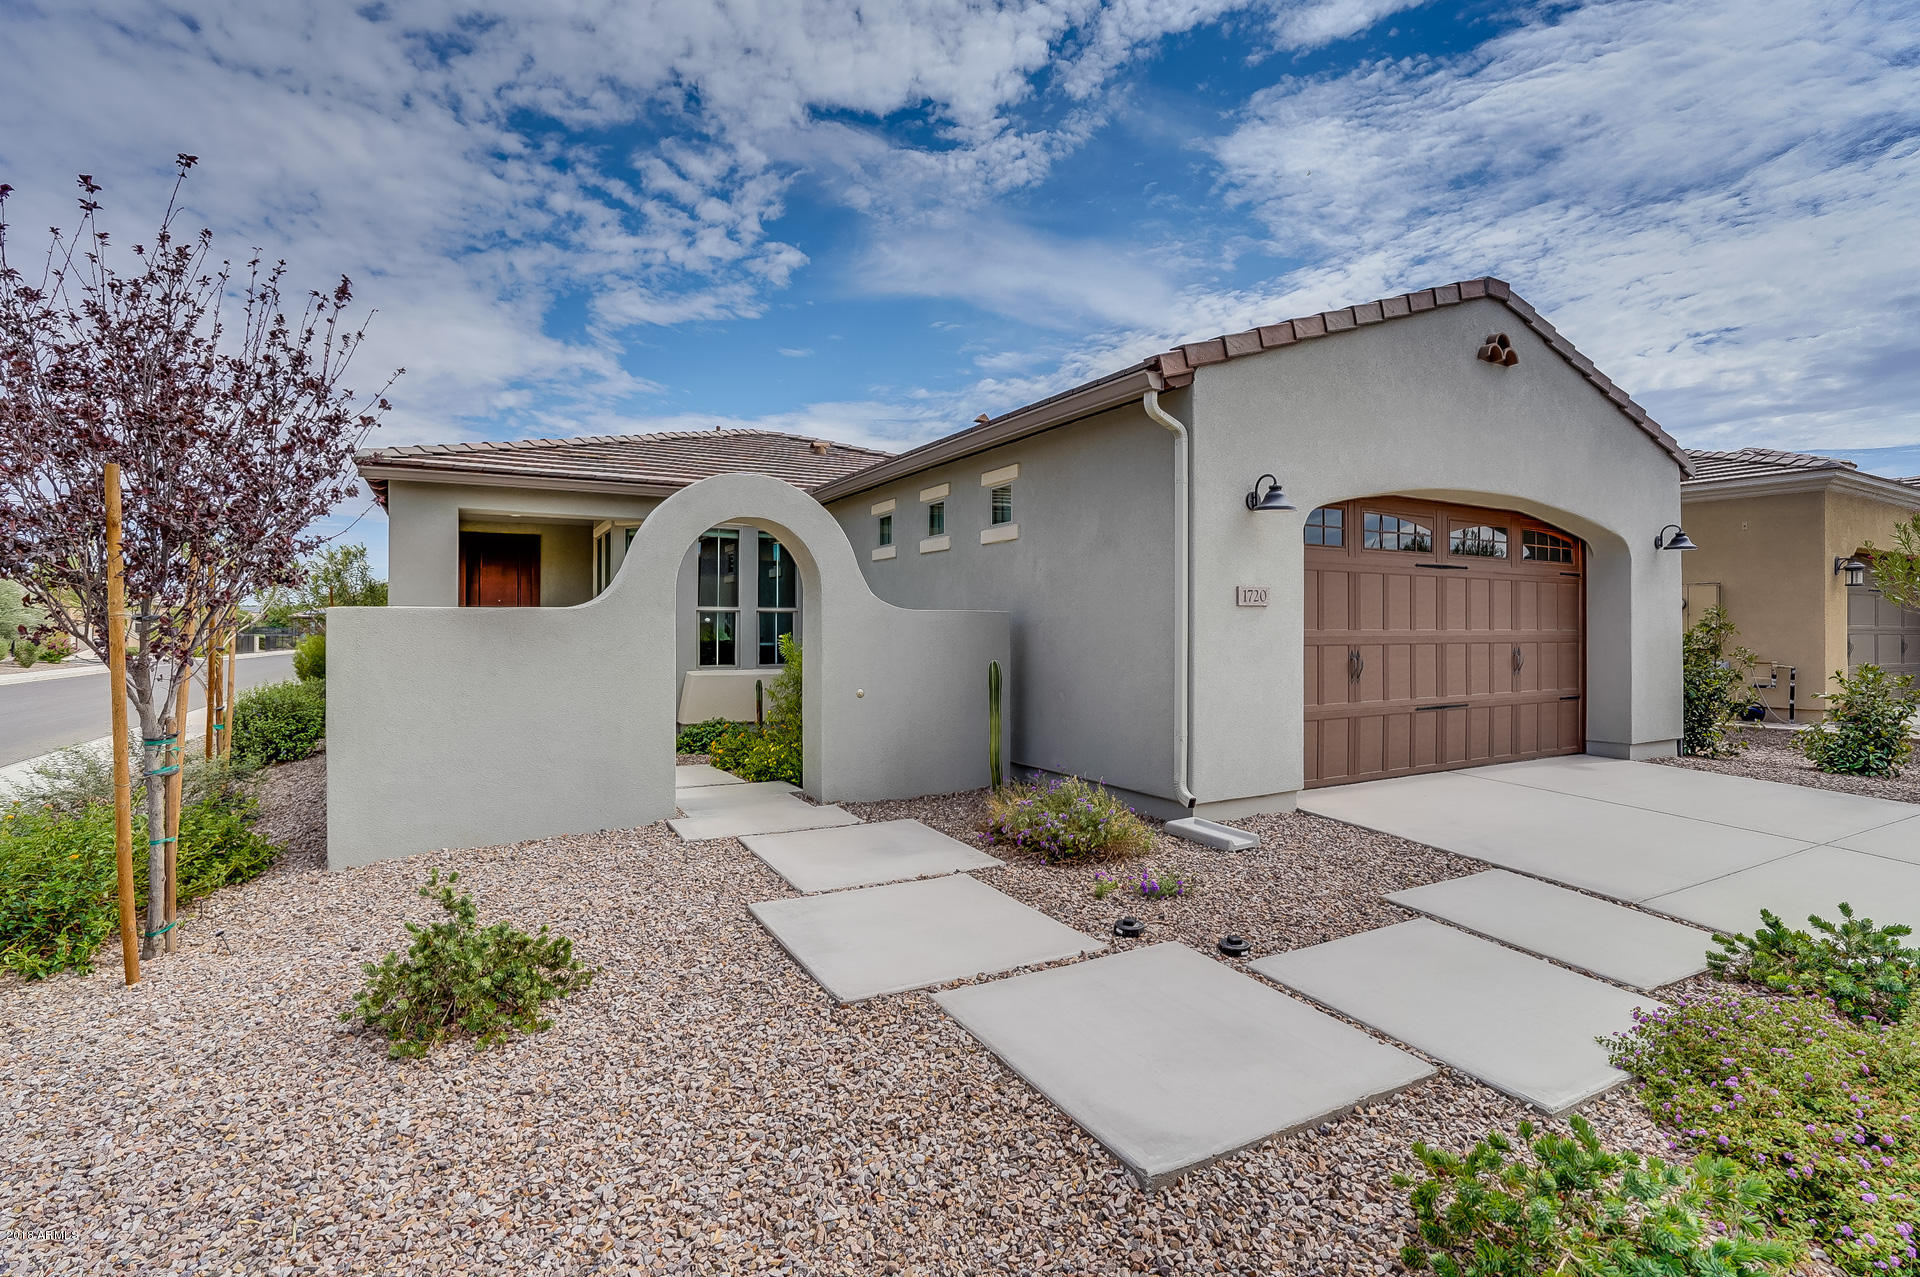 Photo for 1720 E Elysian Pass, San Tan Valley, AZ 85140 (MLS # 5792399)